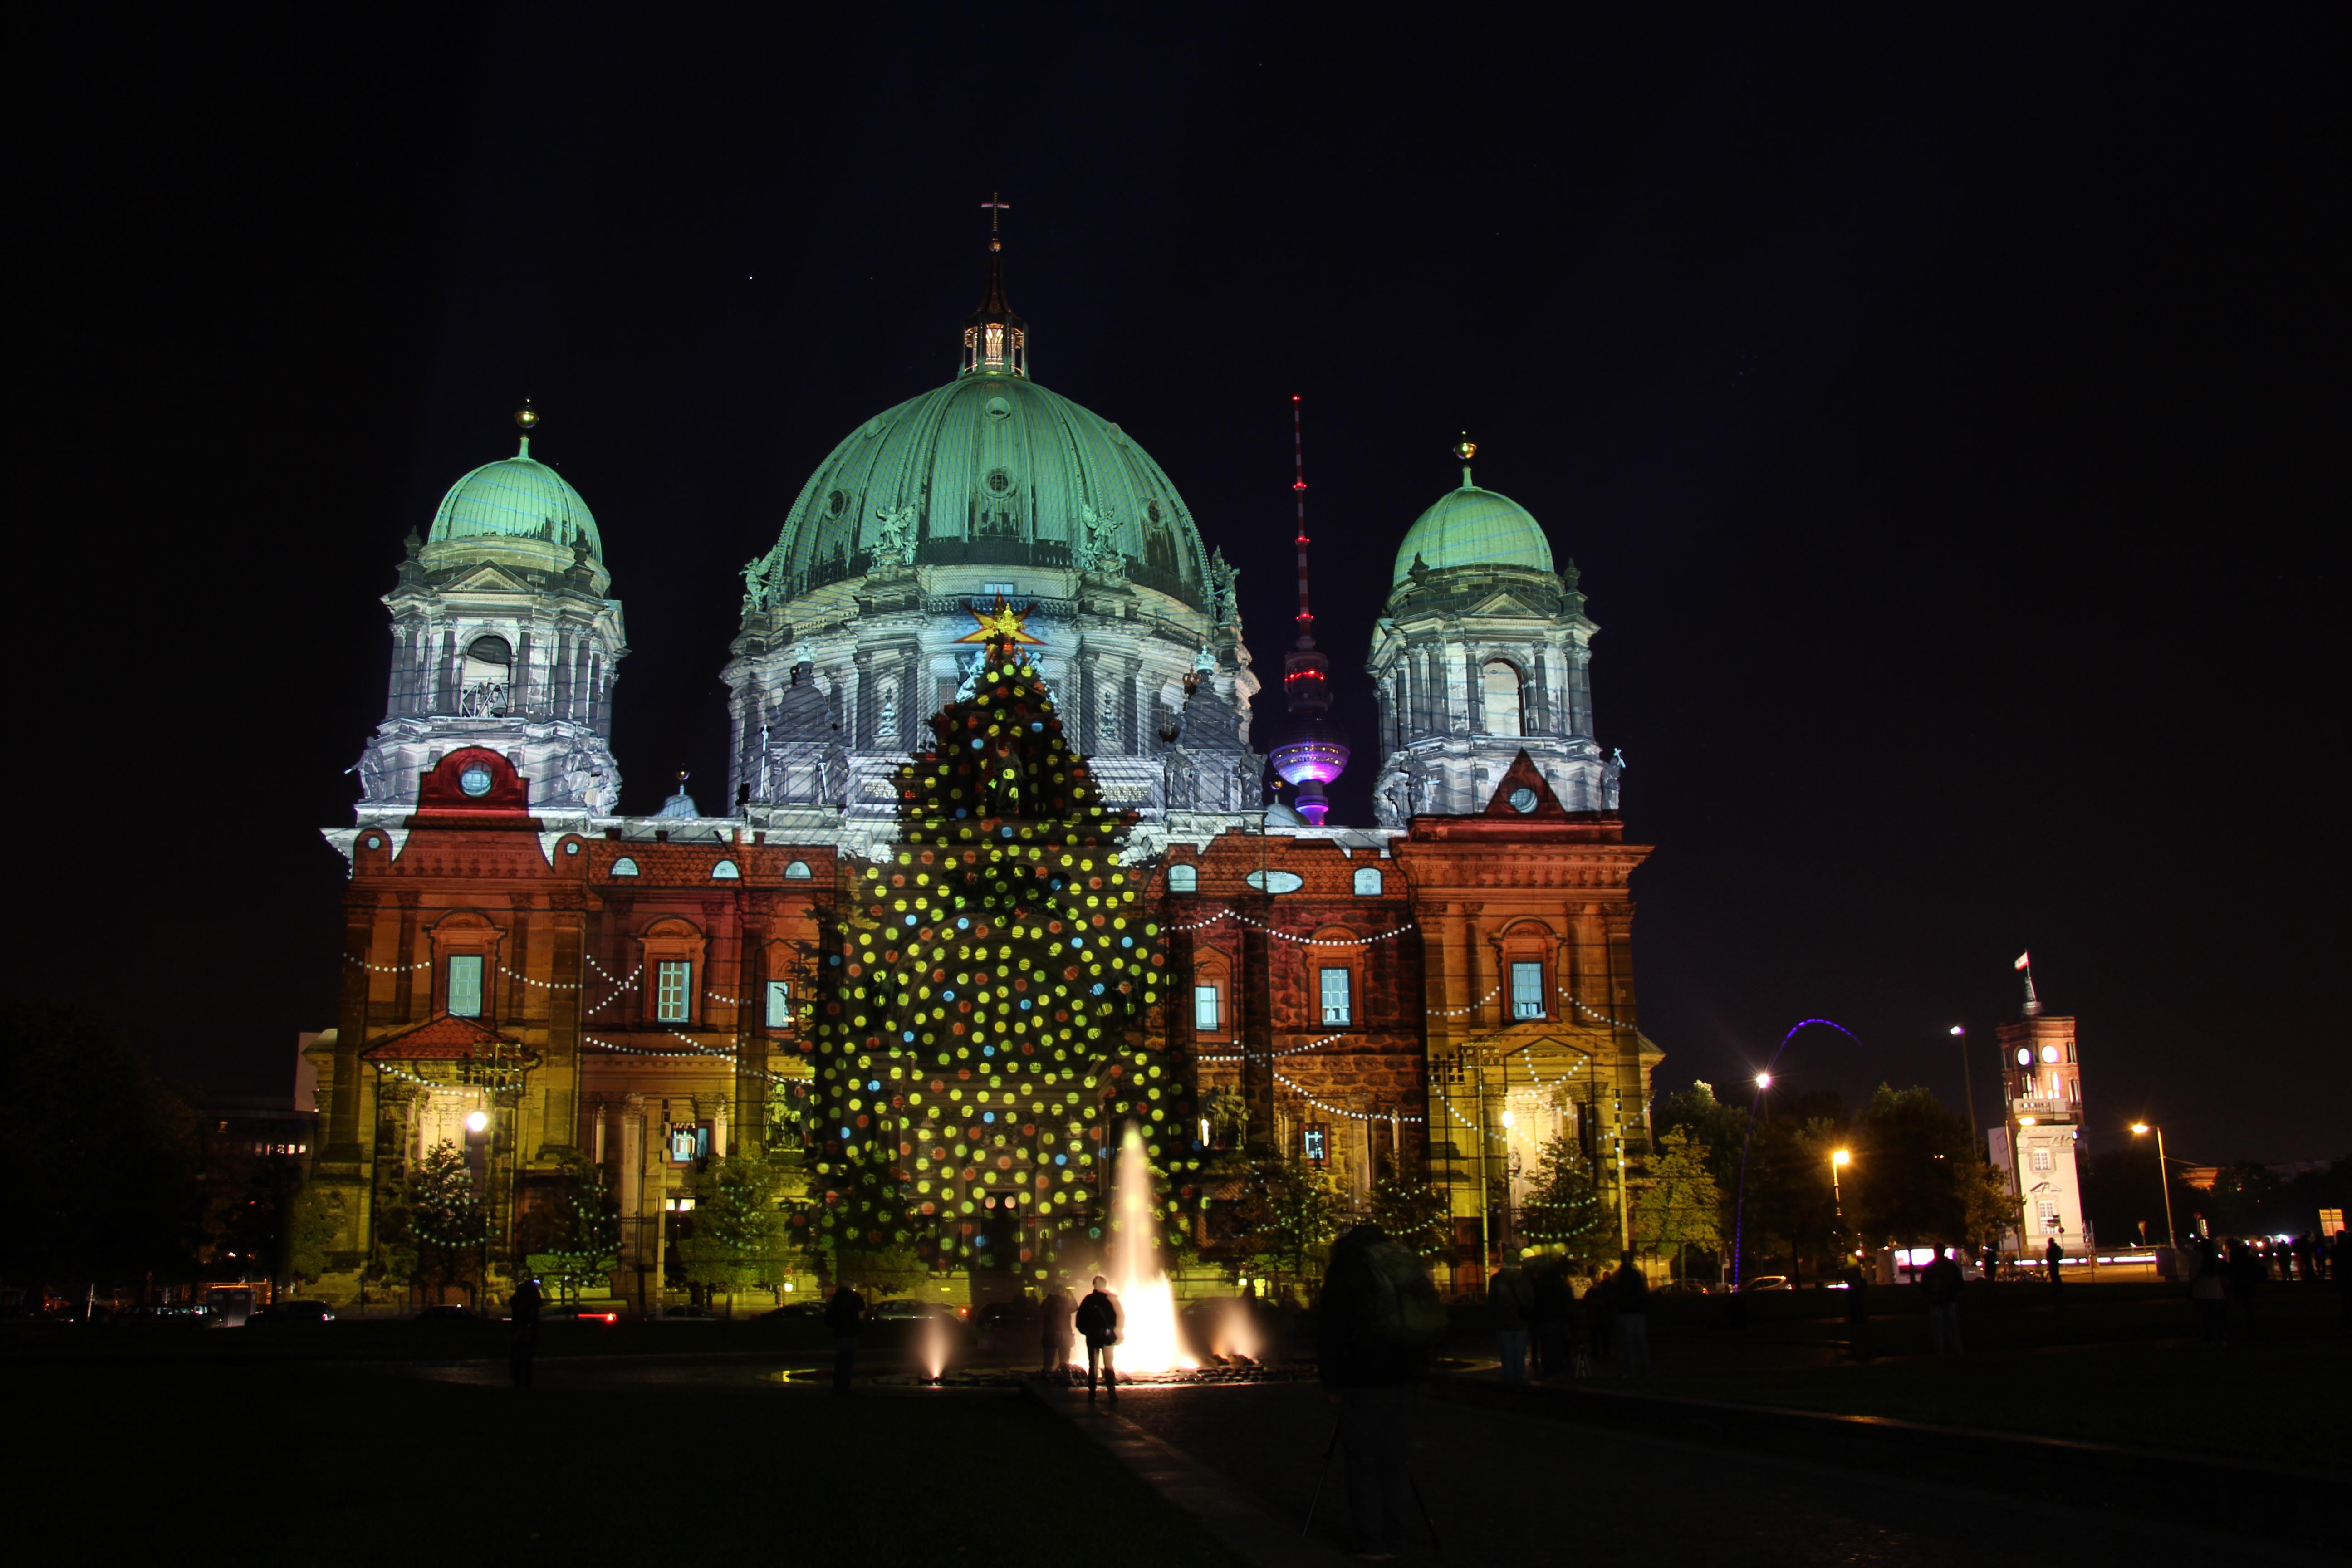 The Berliner Dom (Berlin Cathedral) with a Christmas Tree projection by Urlaubsland Österreich (Tourist Country Austria) during the Festival of Lights